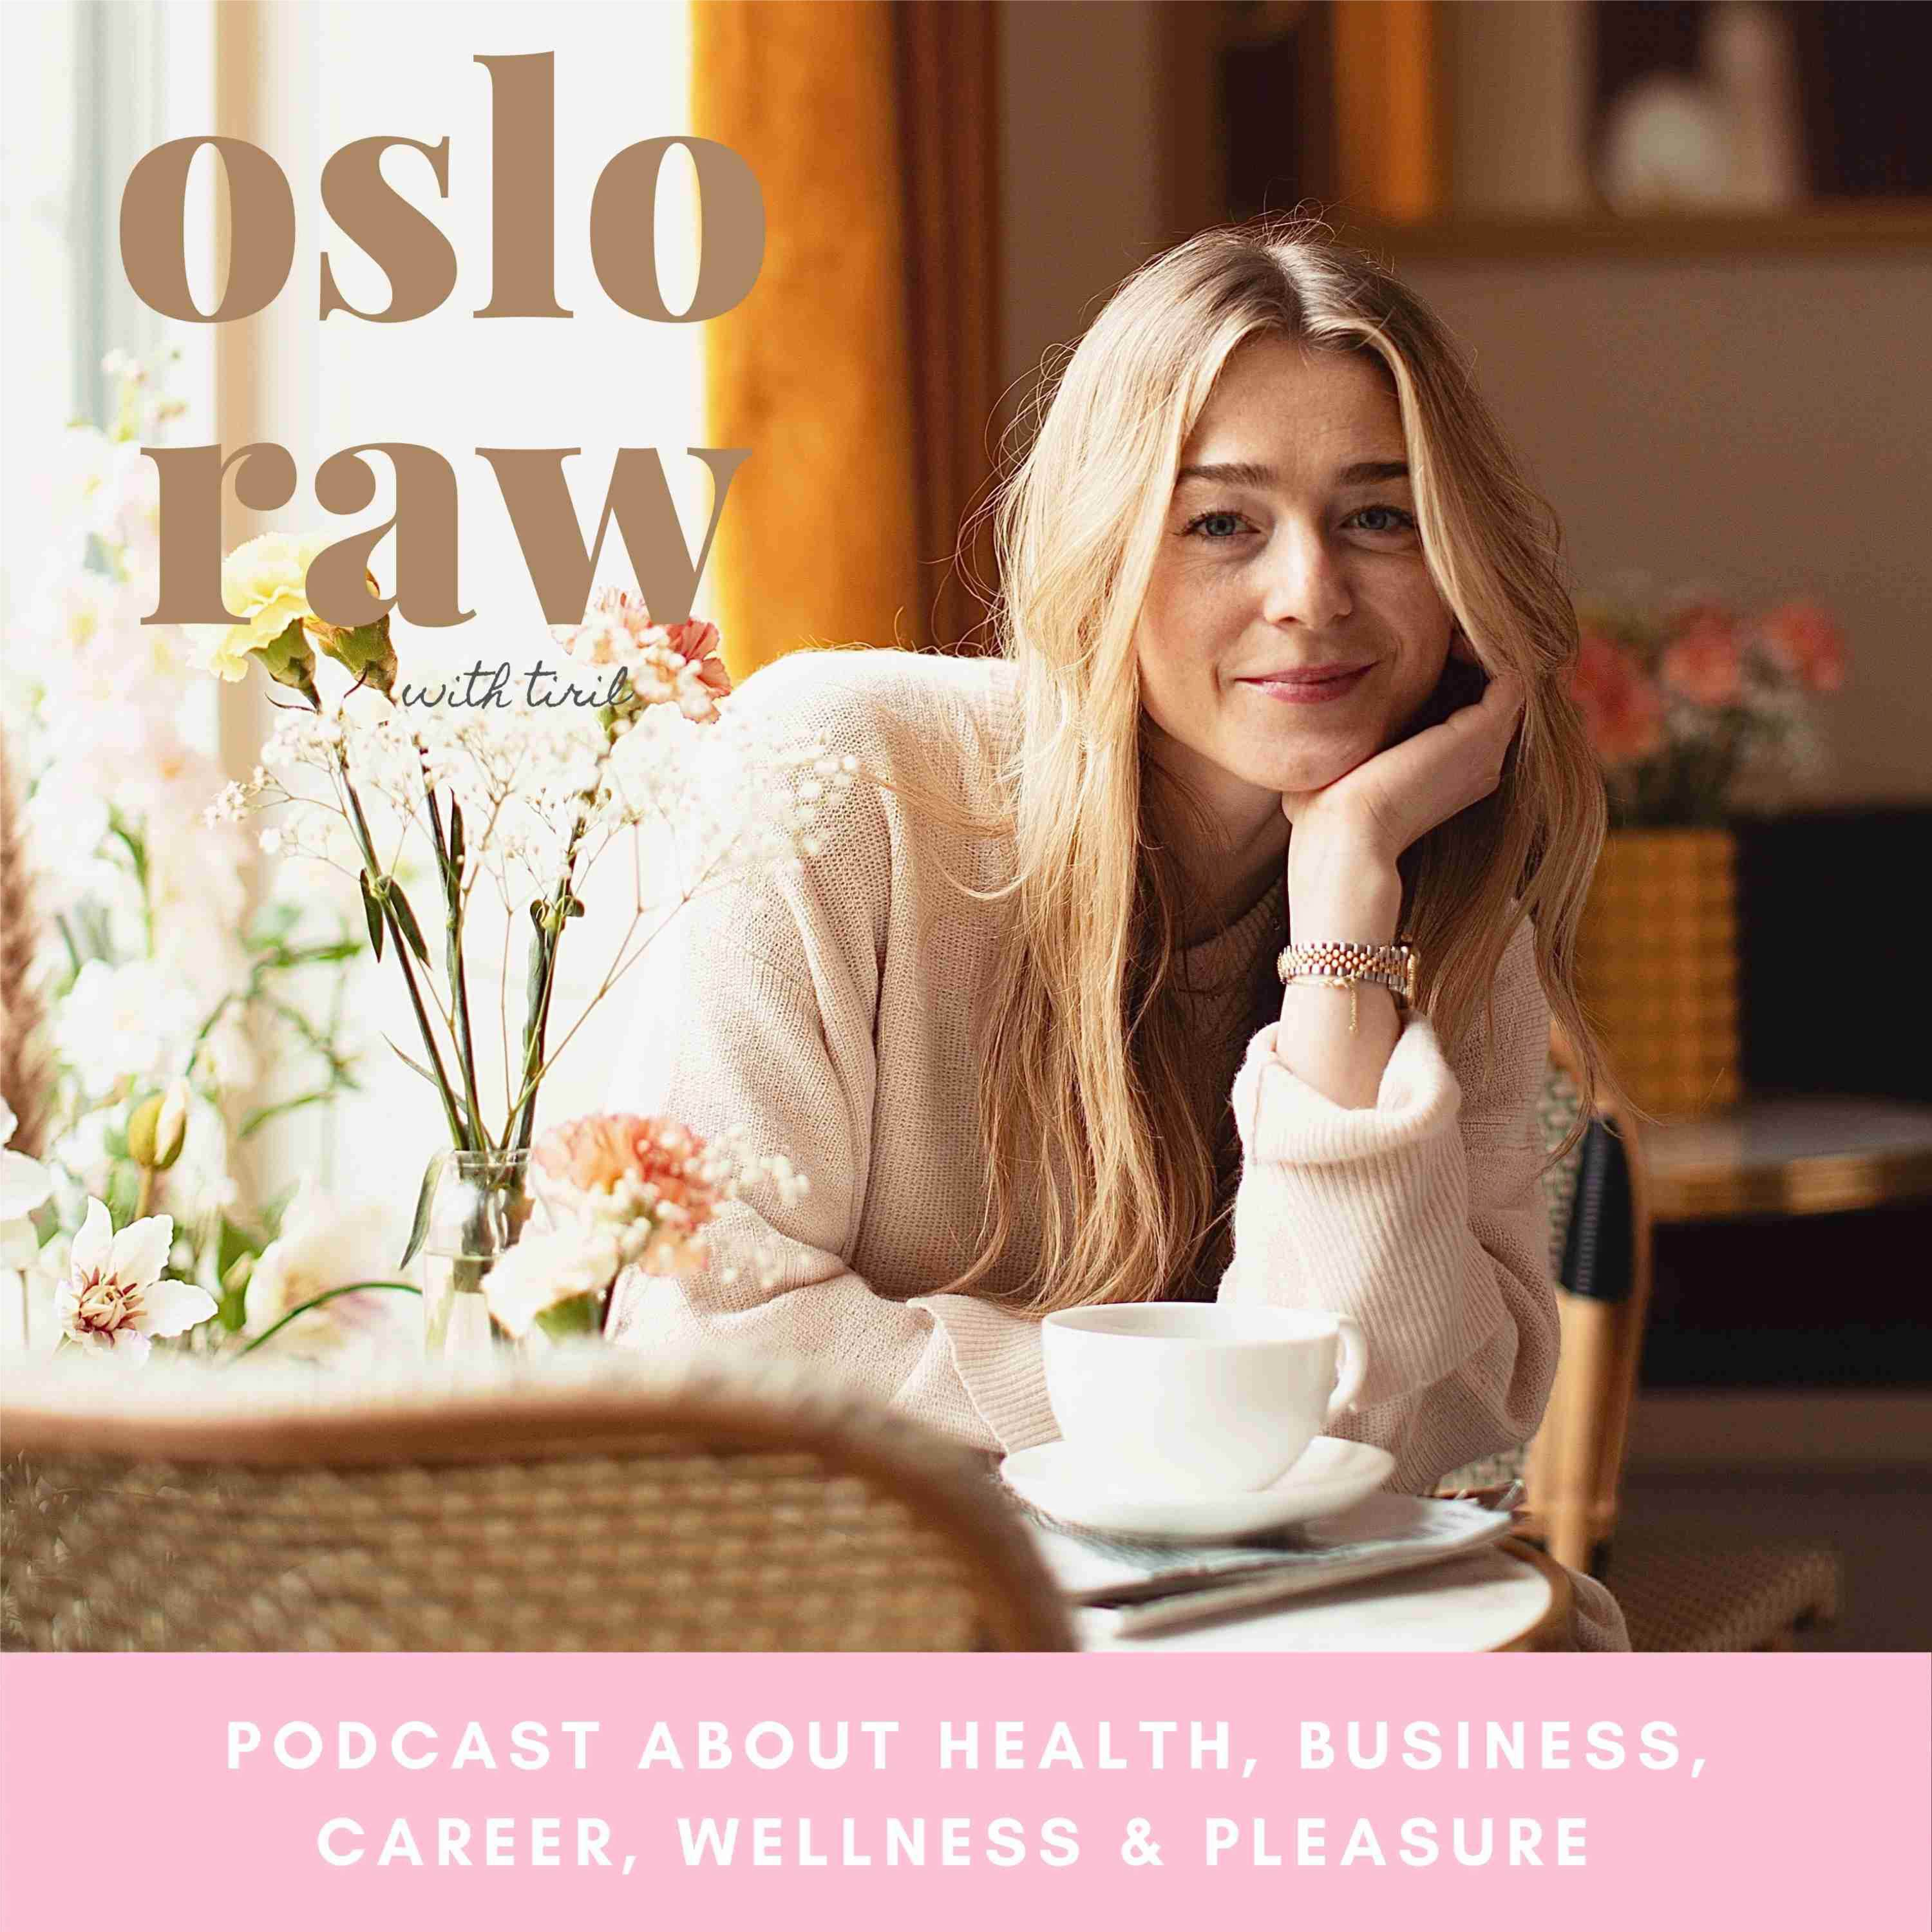 Leaning back & maximize work with Susanne Holzweiler